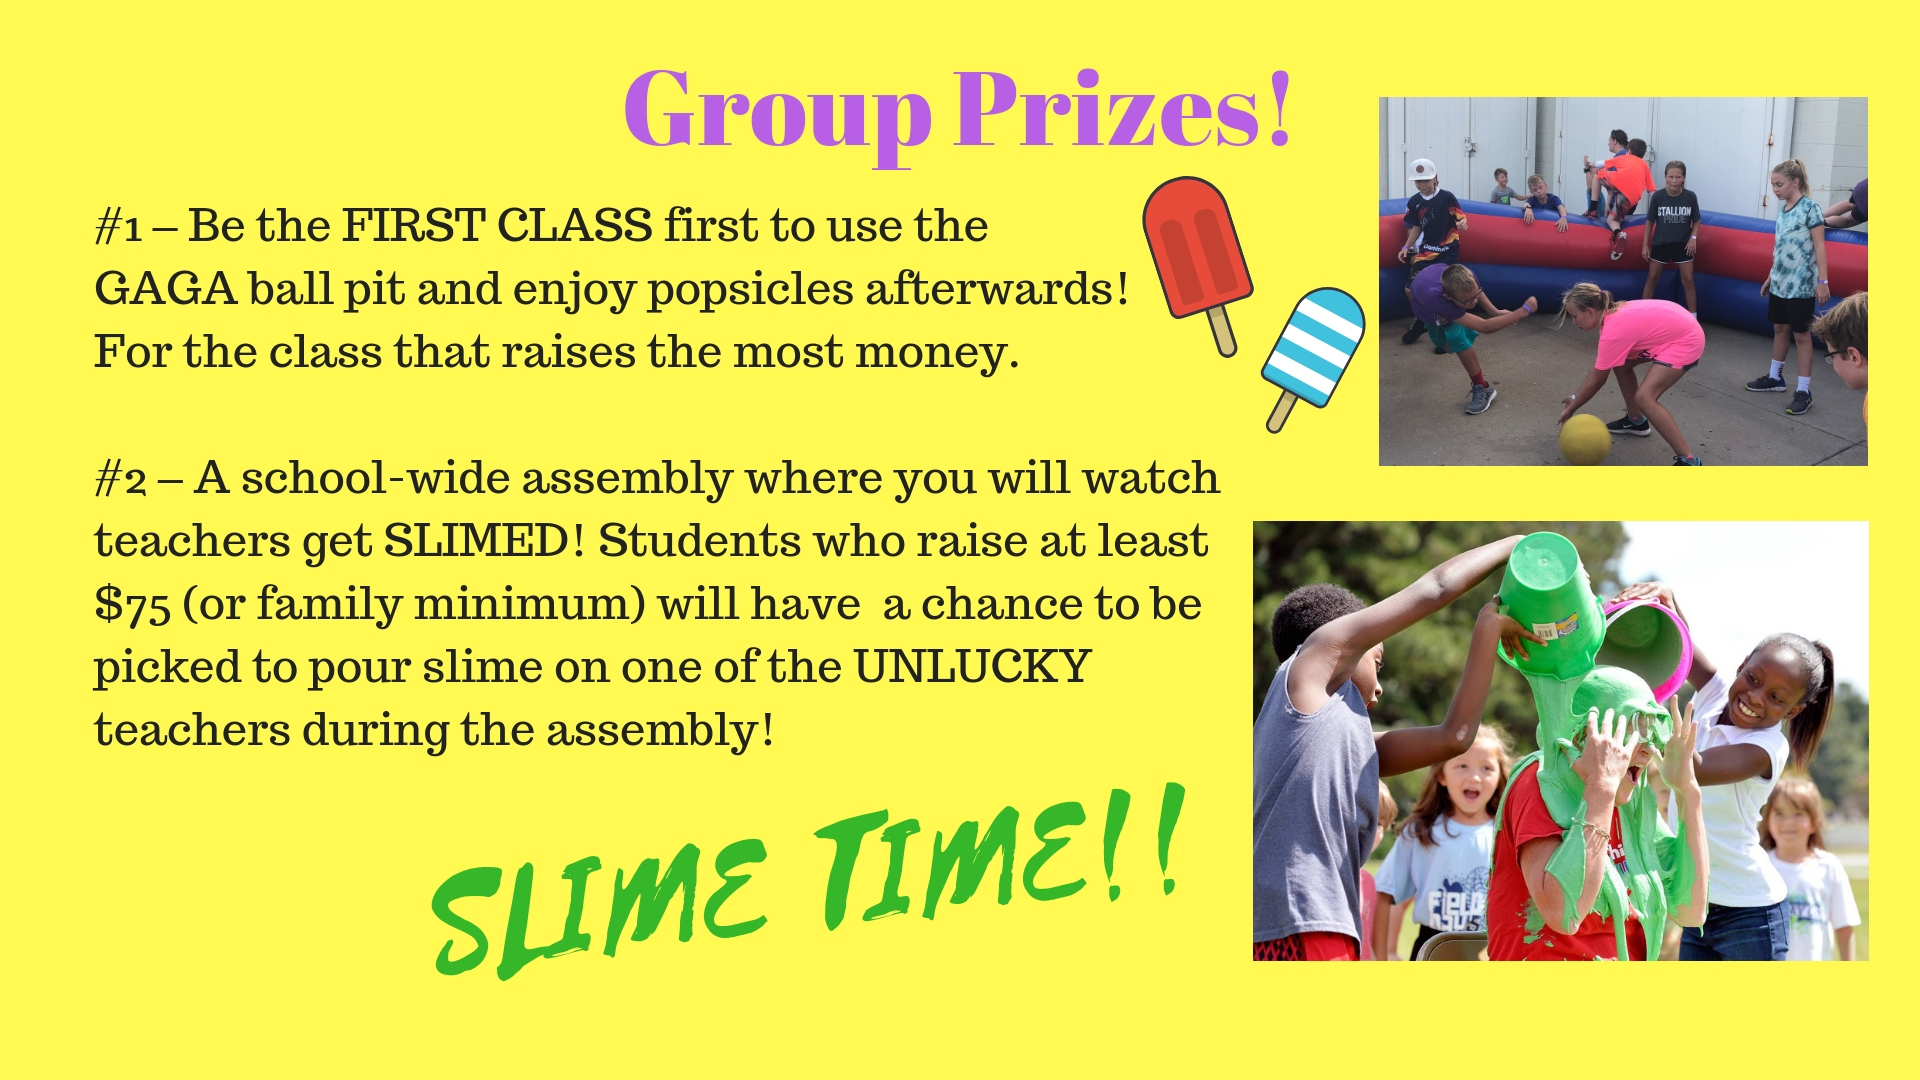 Group Prizes!